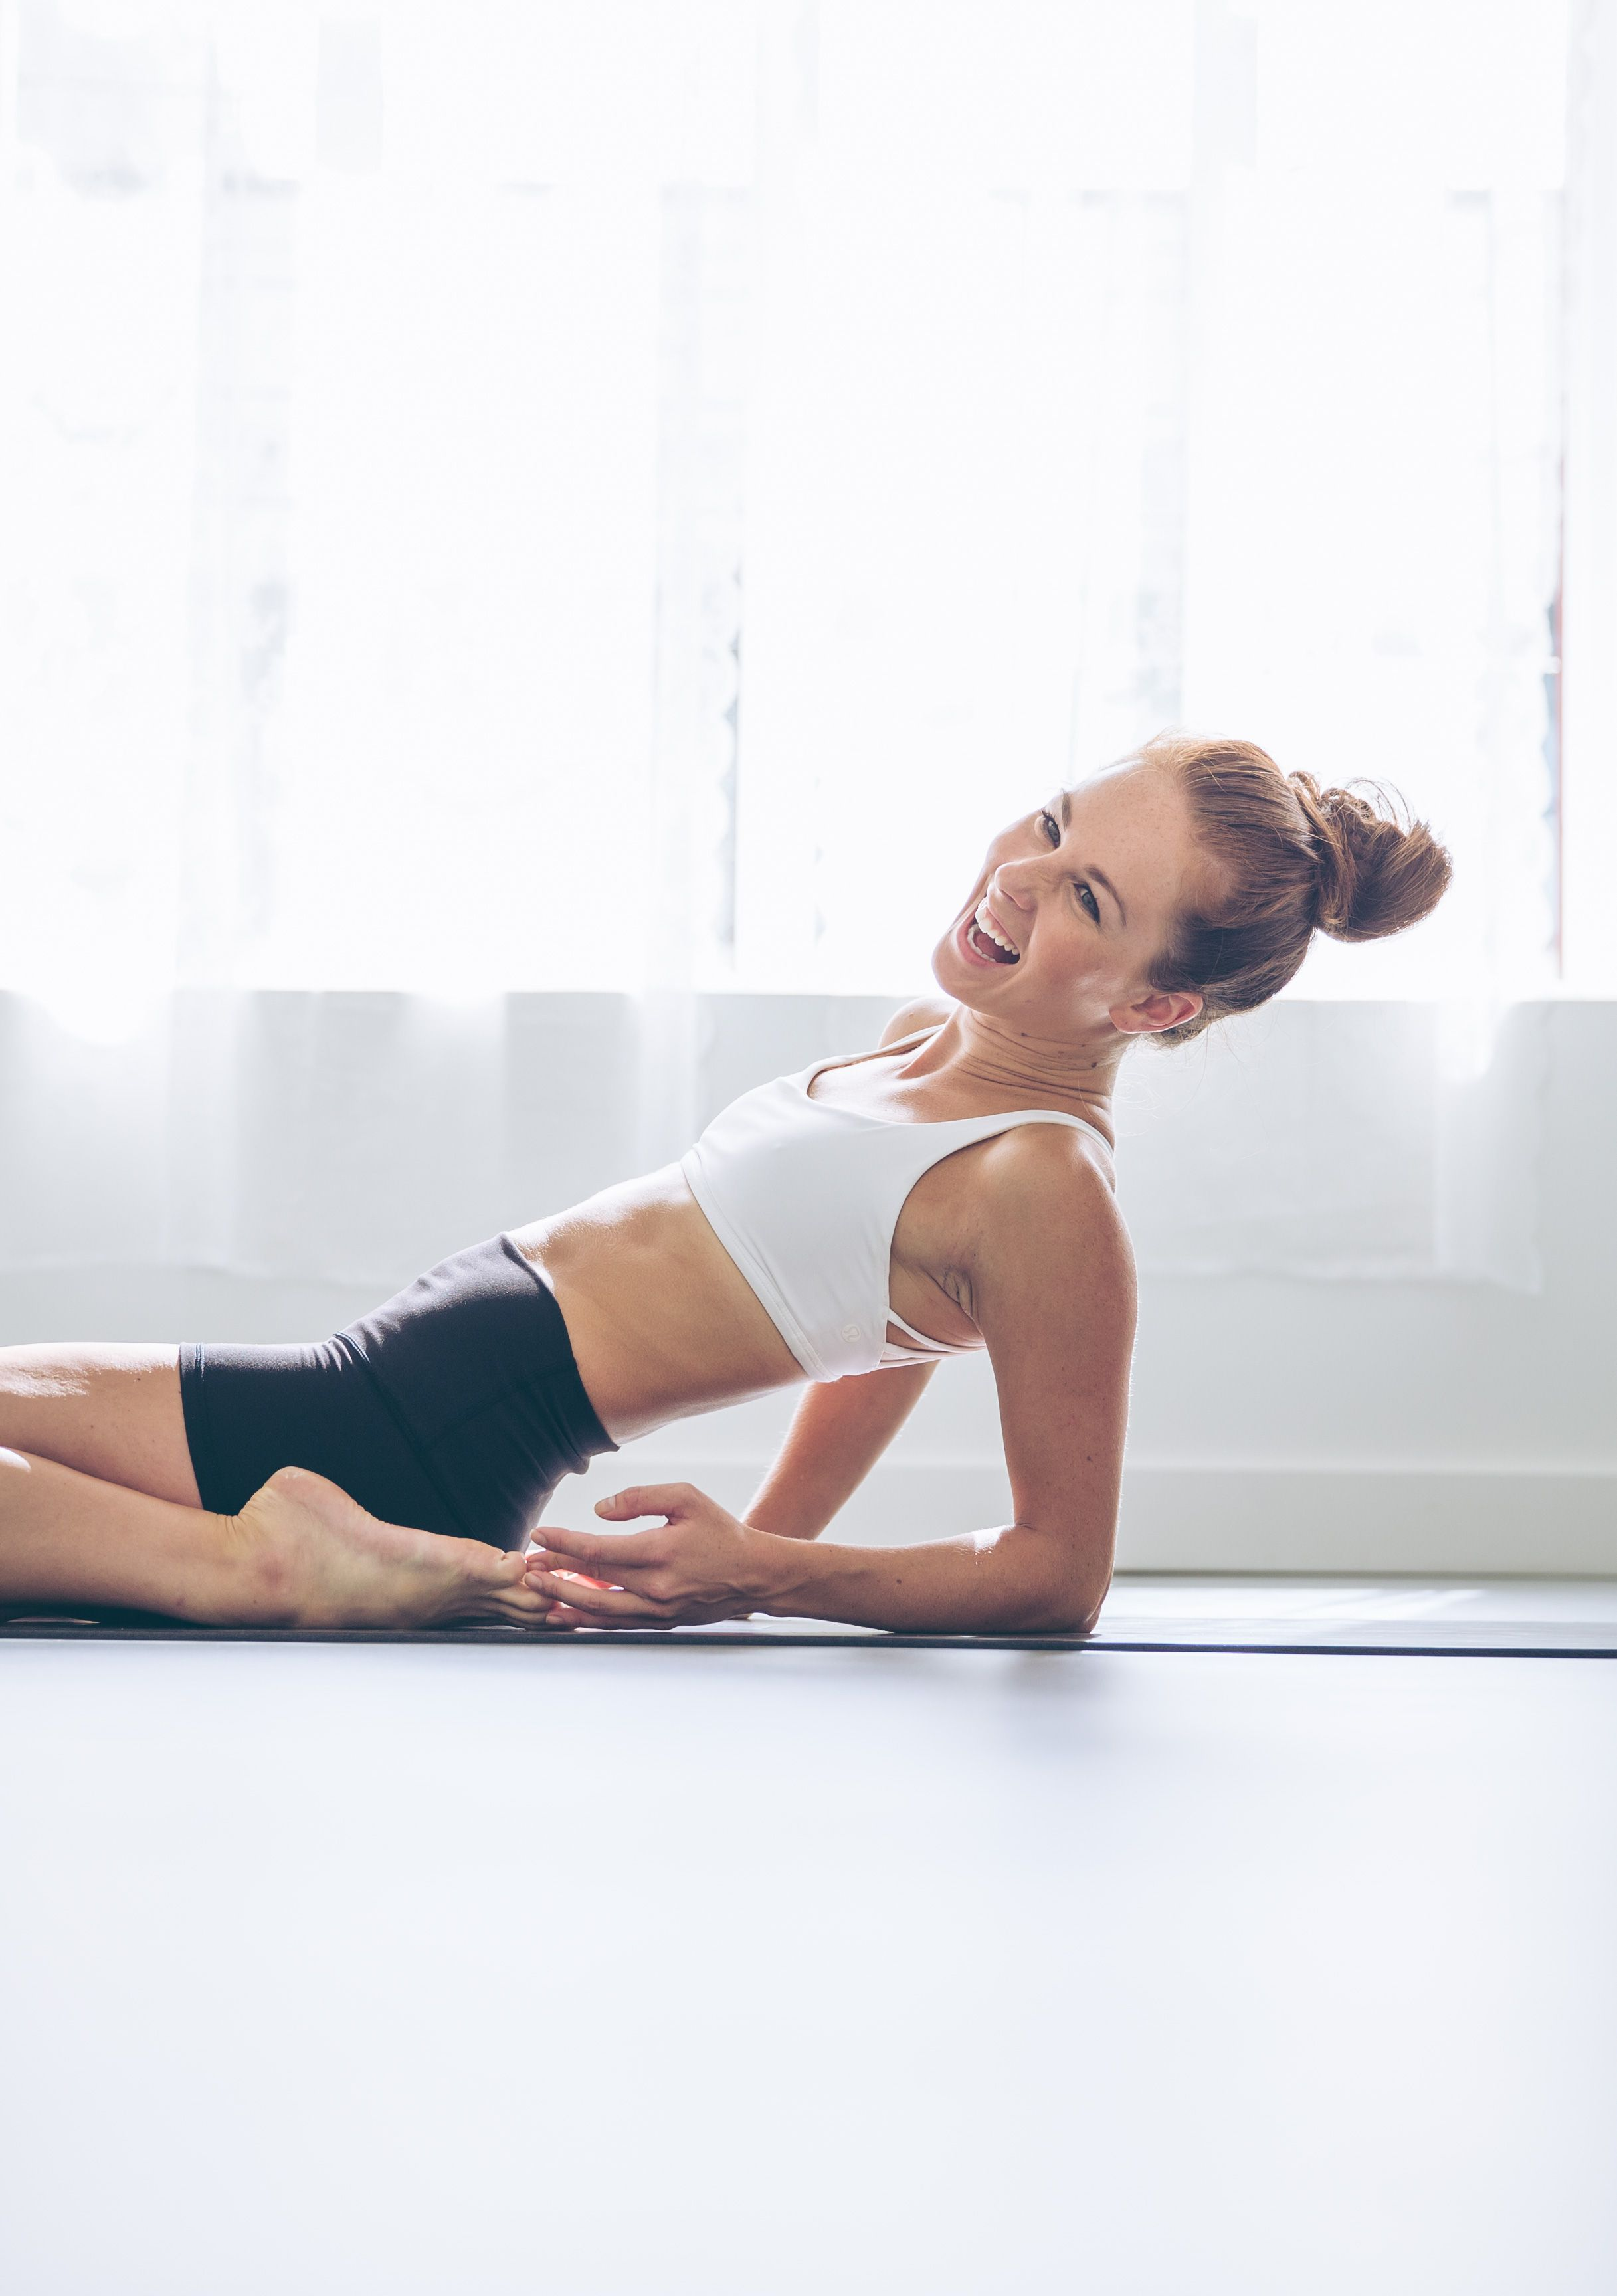 Communication on this topic: 10 Best Yoga Poses For Busy Women, 10-best-yoga-poses-for-busy-women/